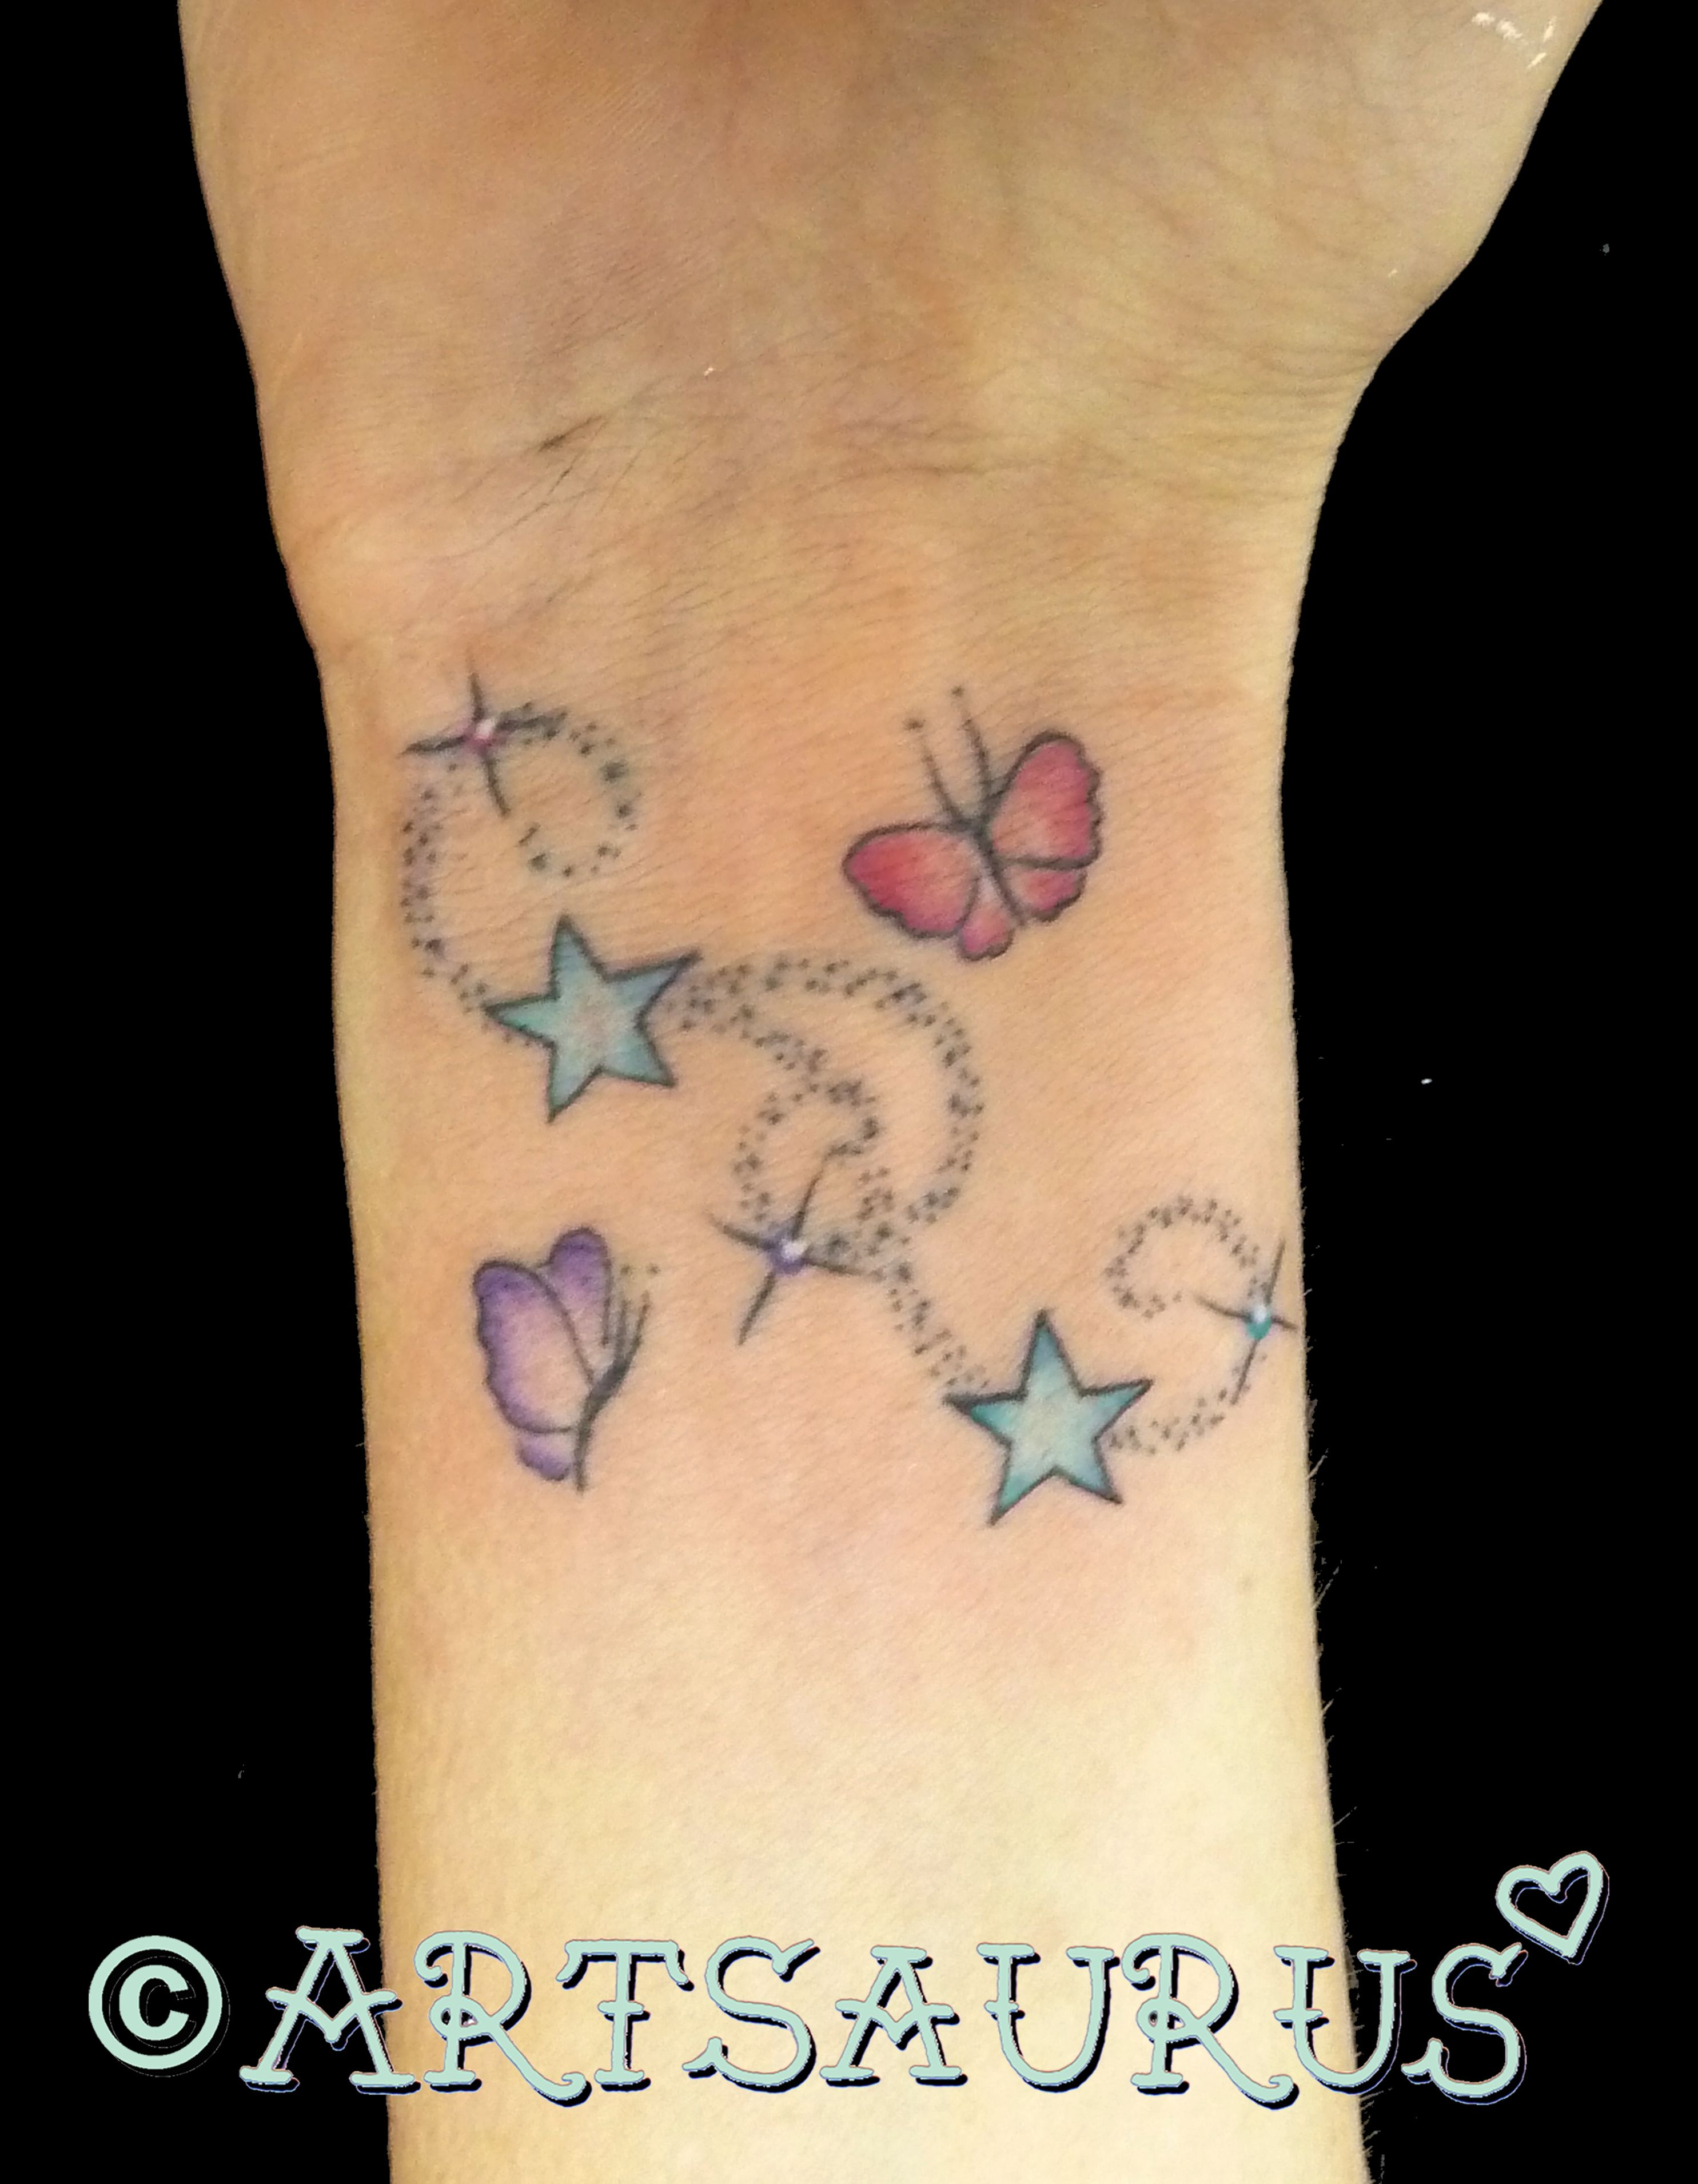 Cutebutterflytattoosonwrist Tags Butterfly Foot Girly pertaining to dimensions 2970 X 3820